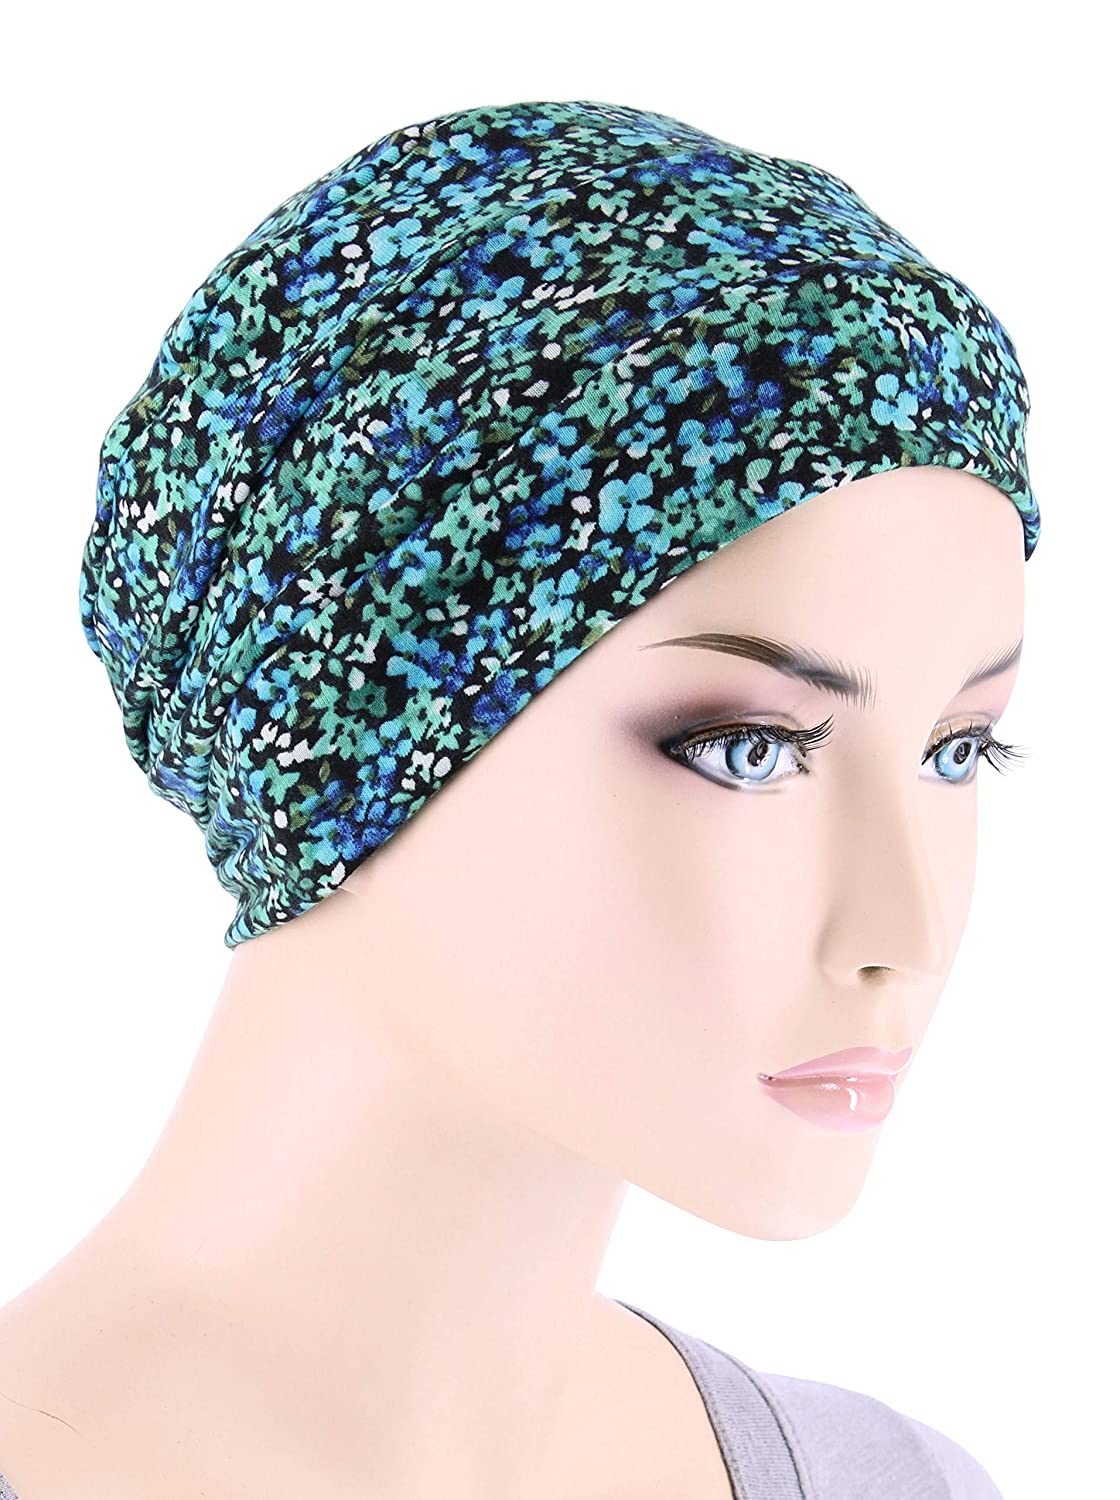 a9a25a4aa24 Chemo Cap Womens Beanie Sleep Turban Hat Headwear for Cancer in Green  Petite Floral at Amazon Women s Clothing store